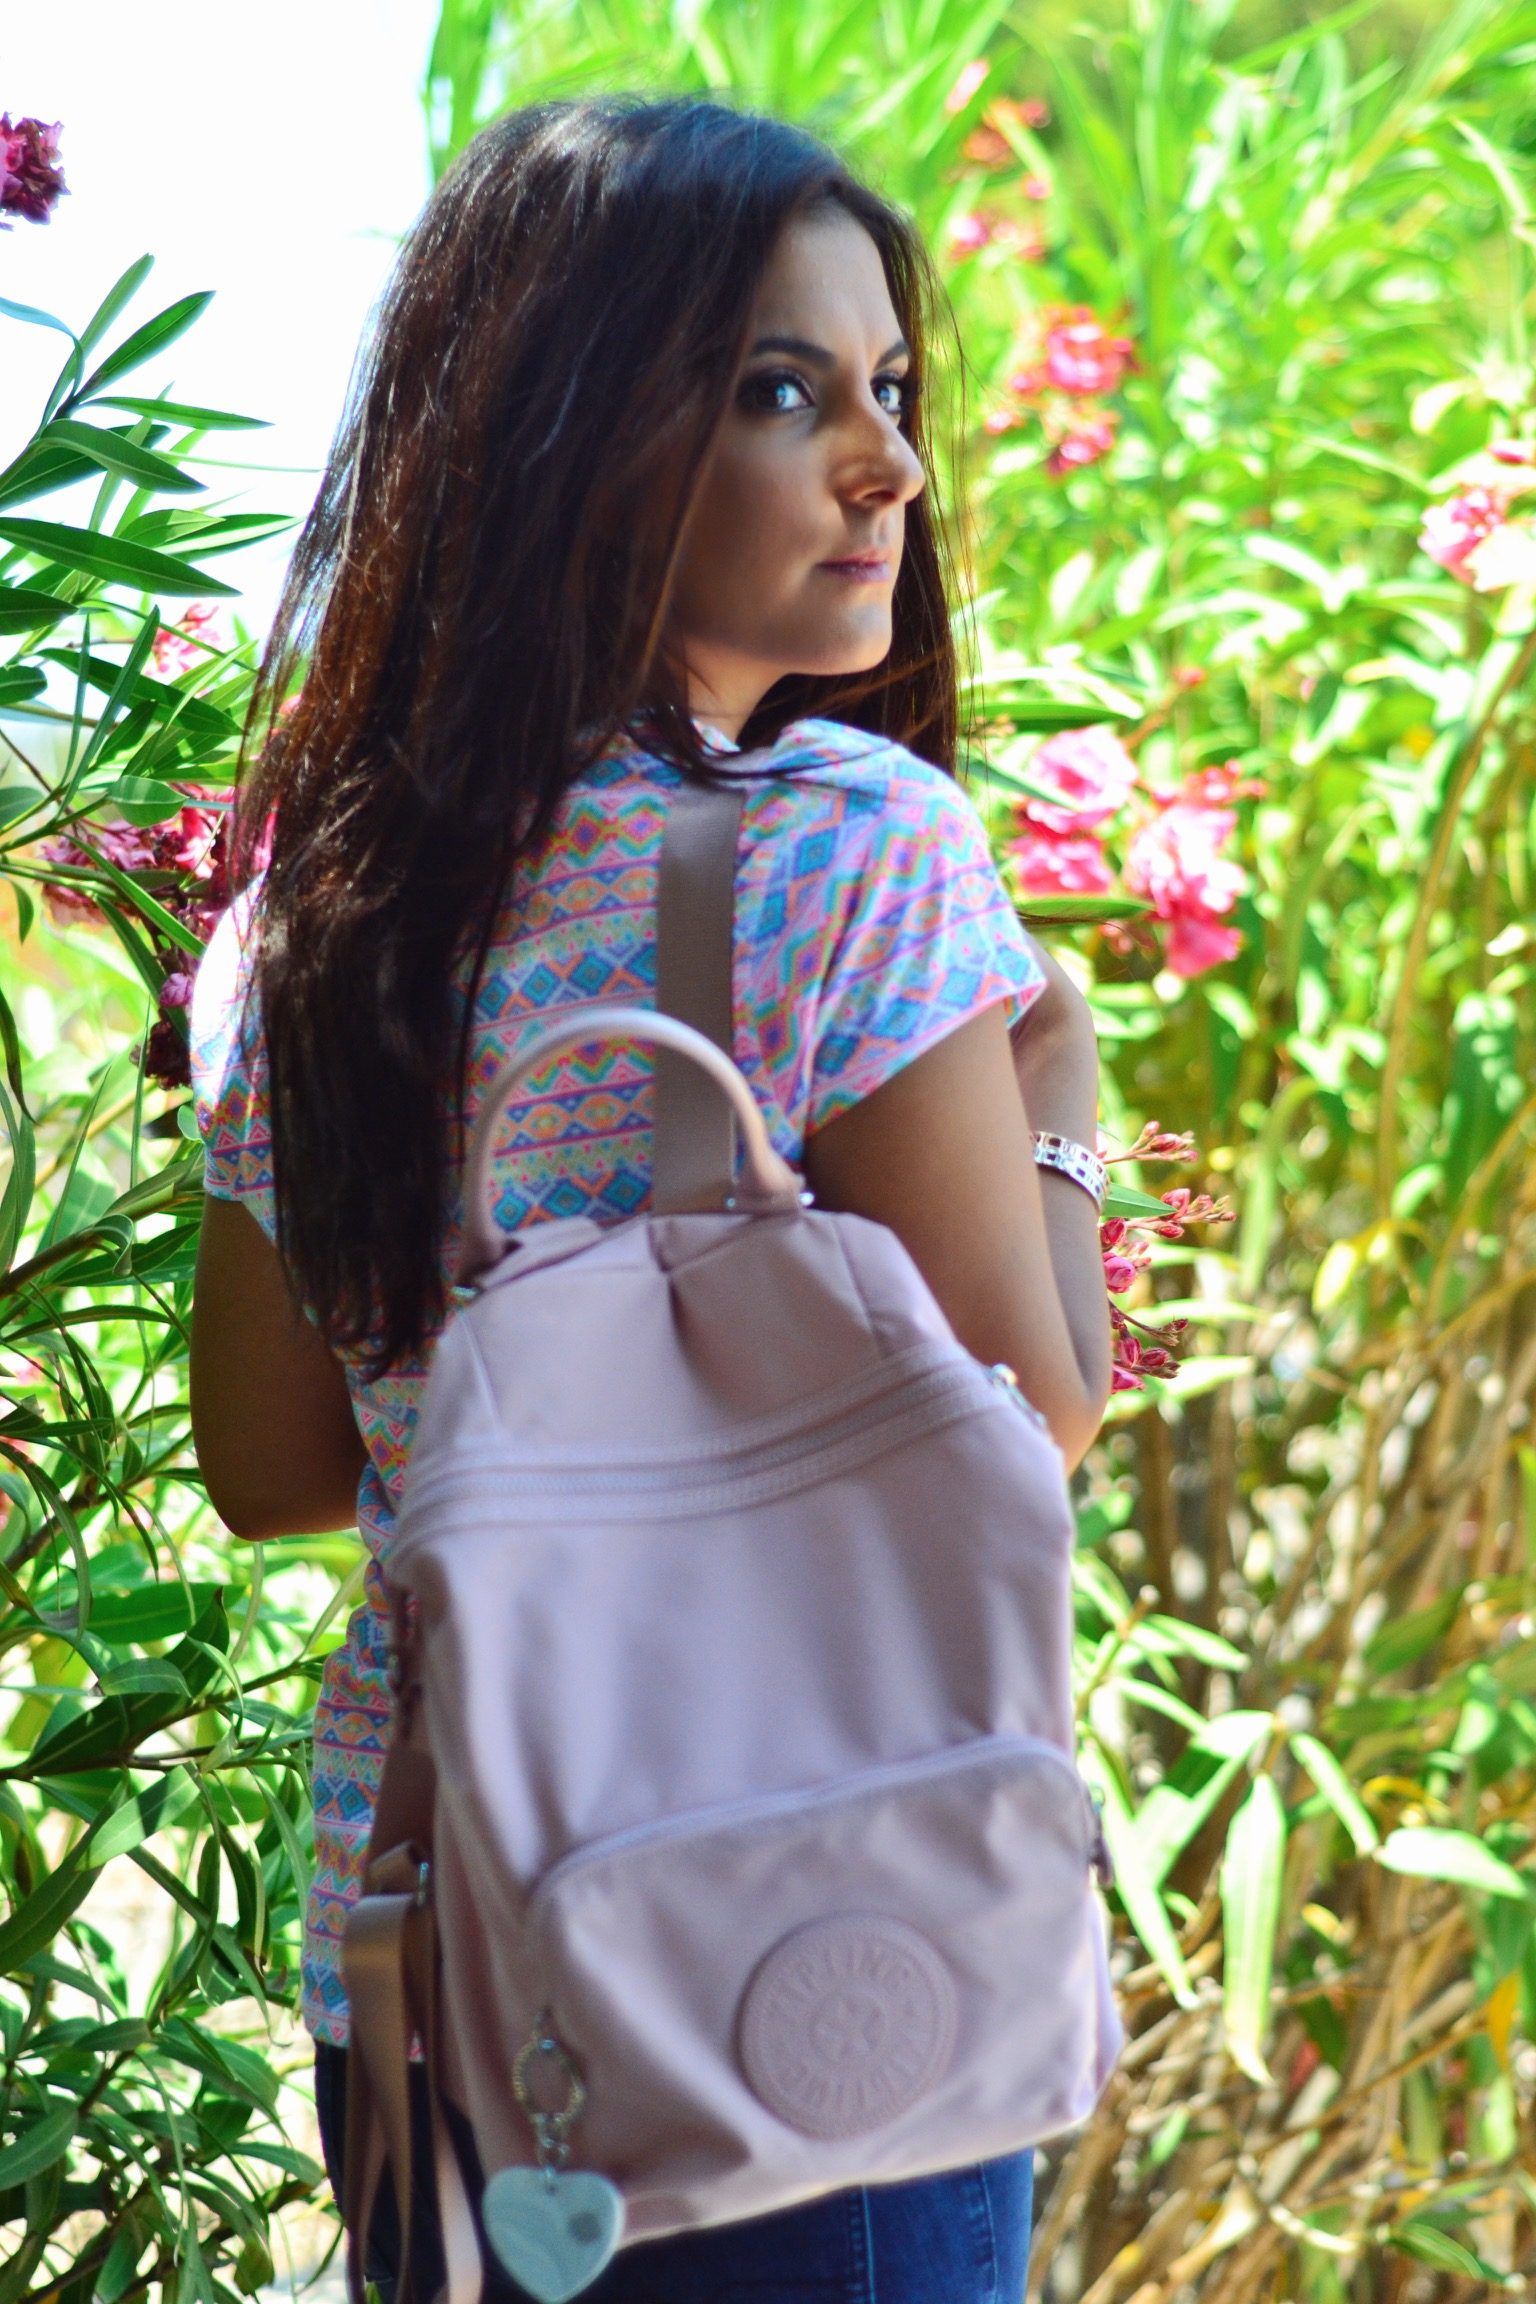 kipping-pink-backpack